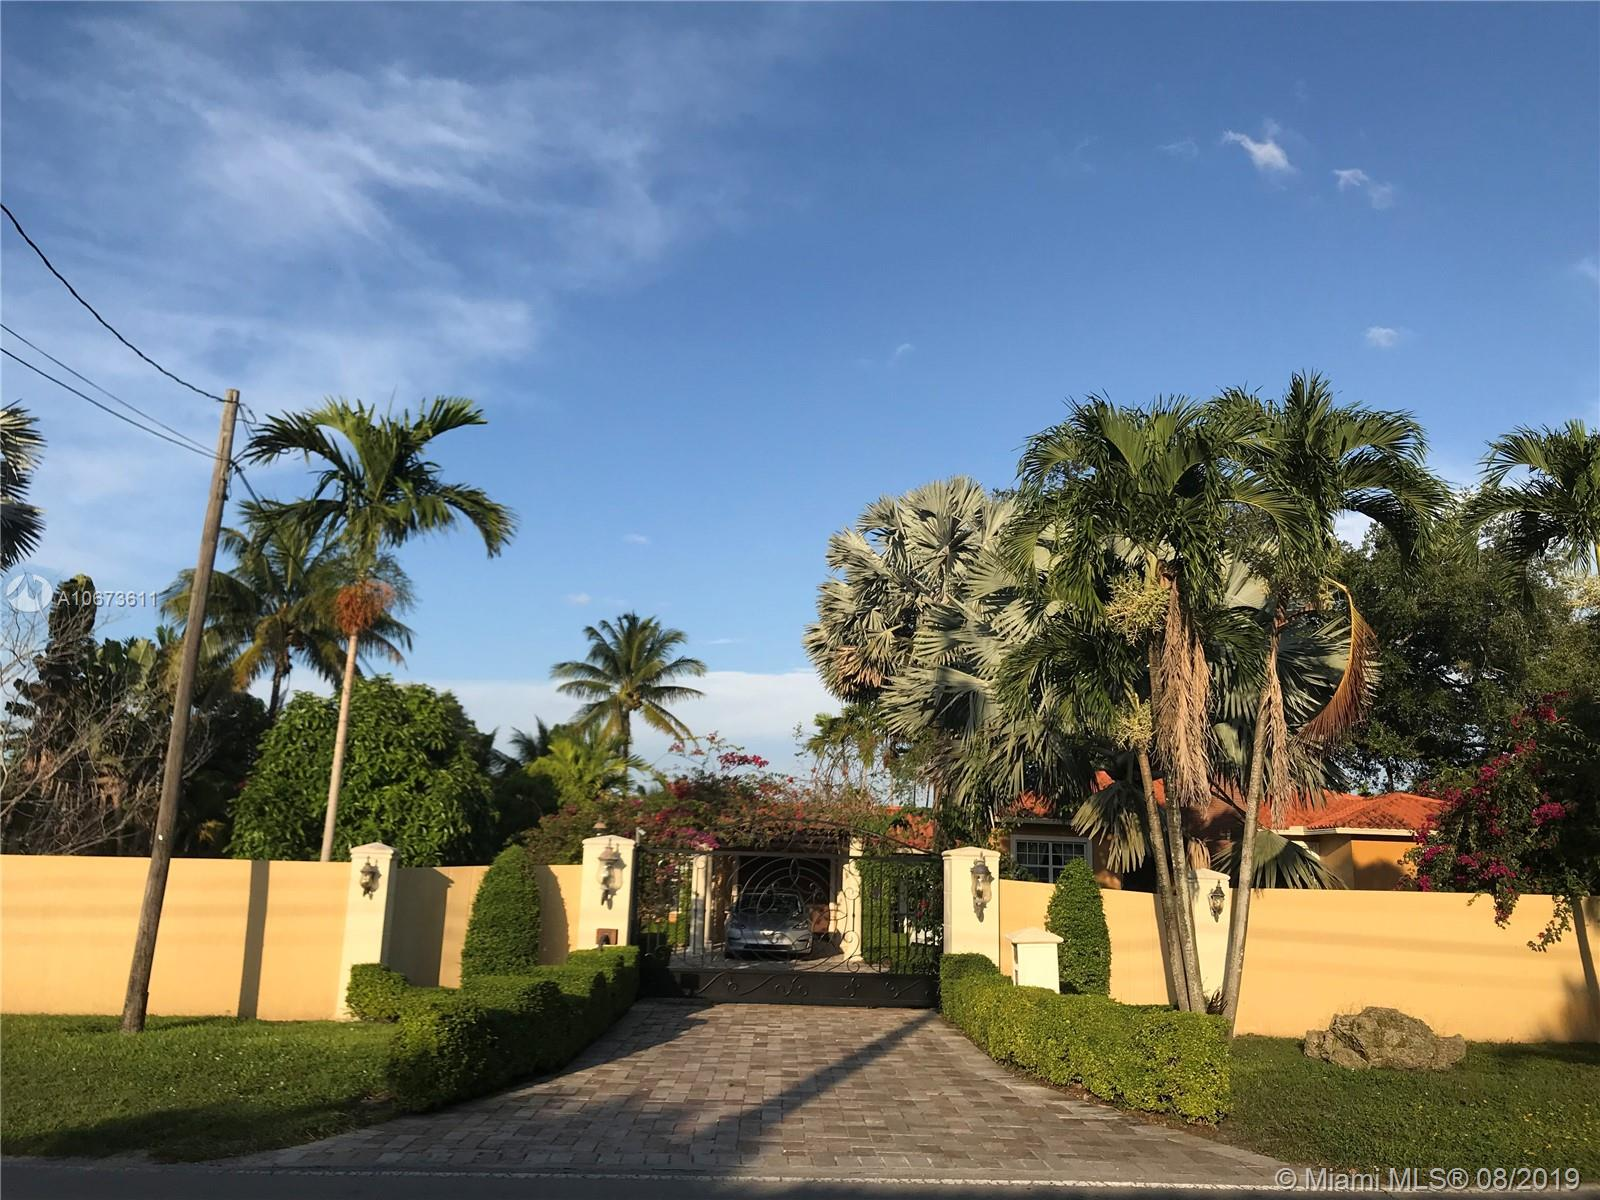 6445 SW 102nd Ave, Kendall, Florida